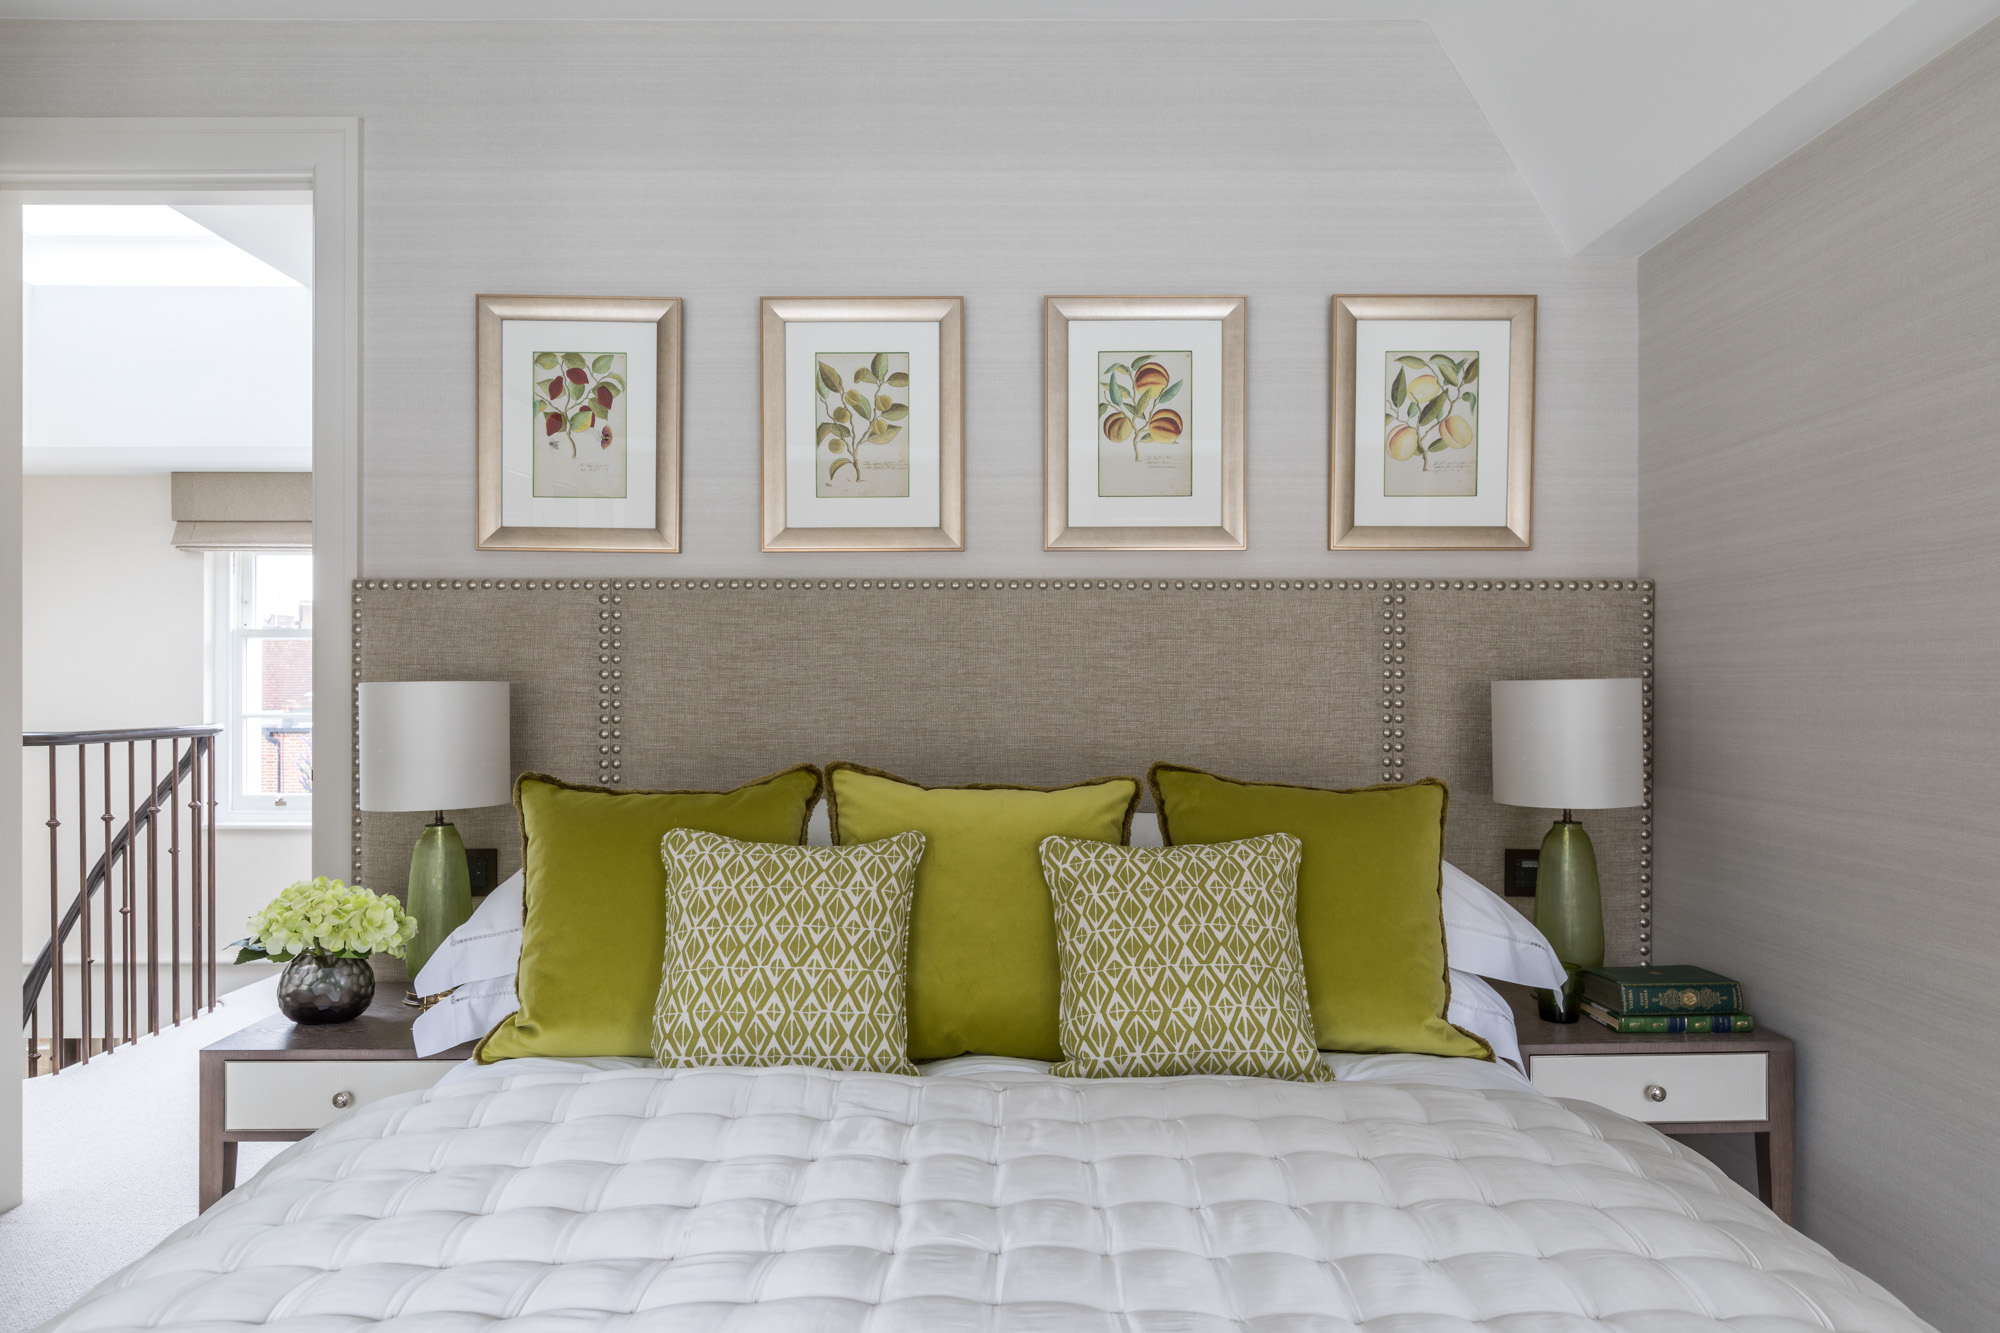 jonathan bond, interior photographer, scatter cushions on double bed, chelsea, london